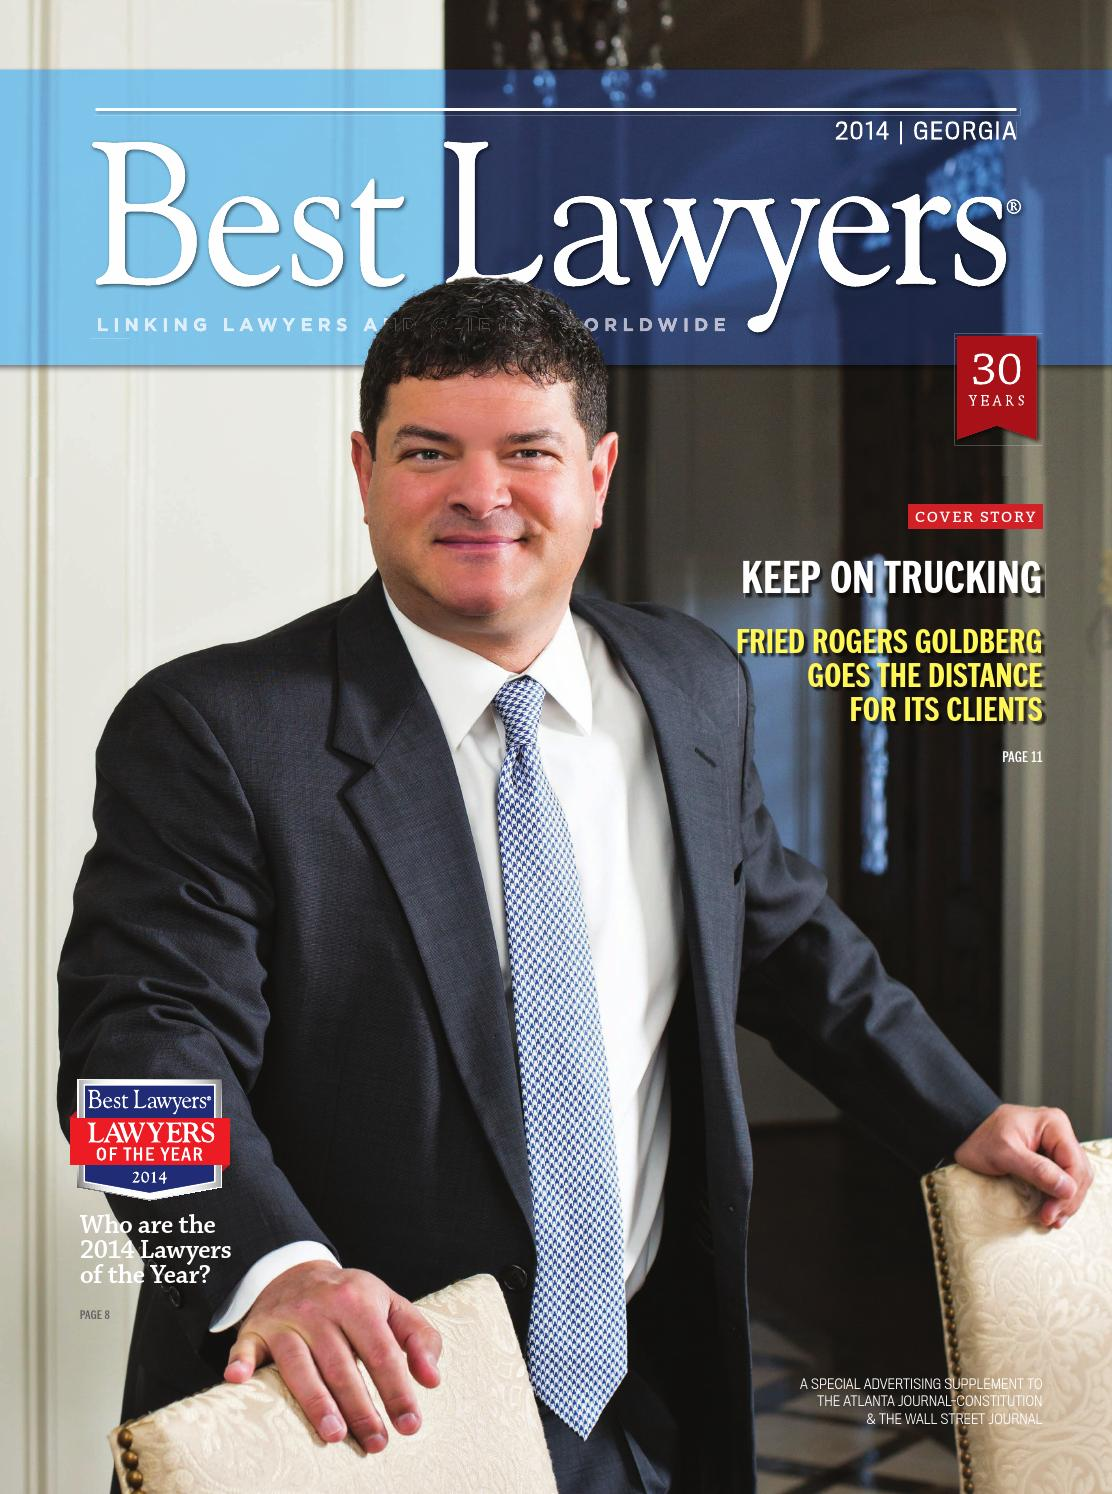 eddd20c2c7e903 Best Lawyers in Georgia 2014 by Best Lawyers - issuu